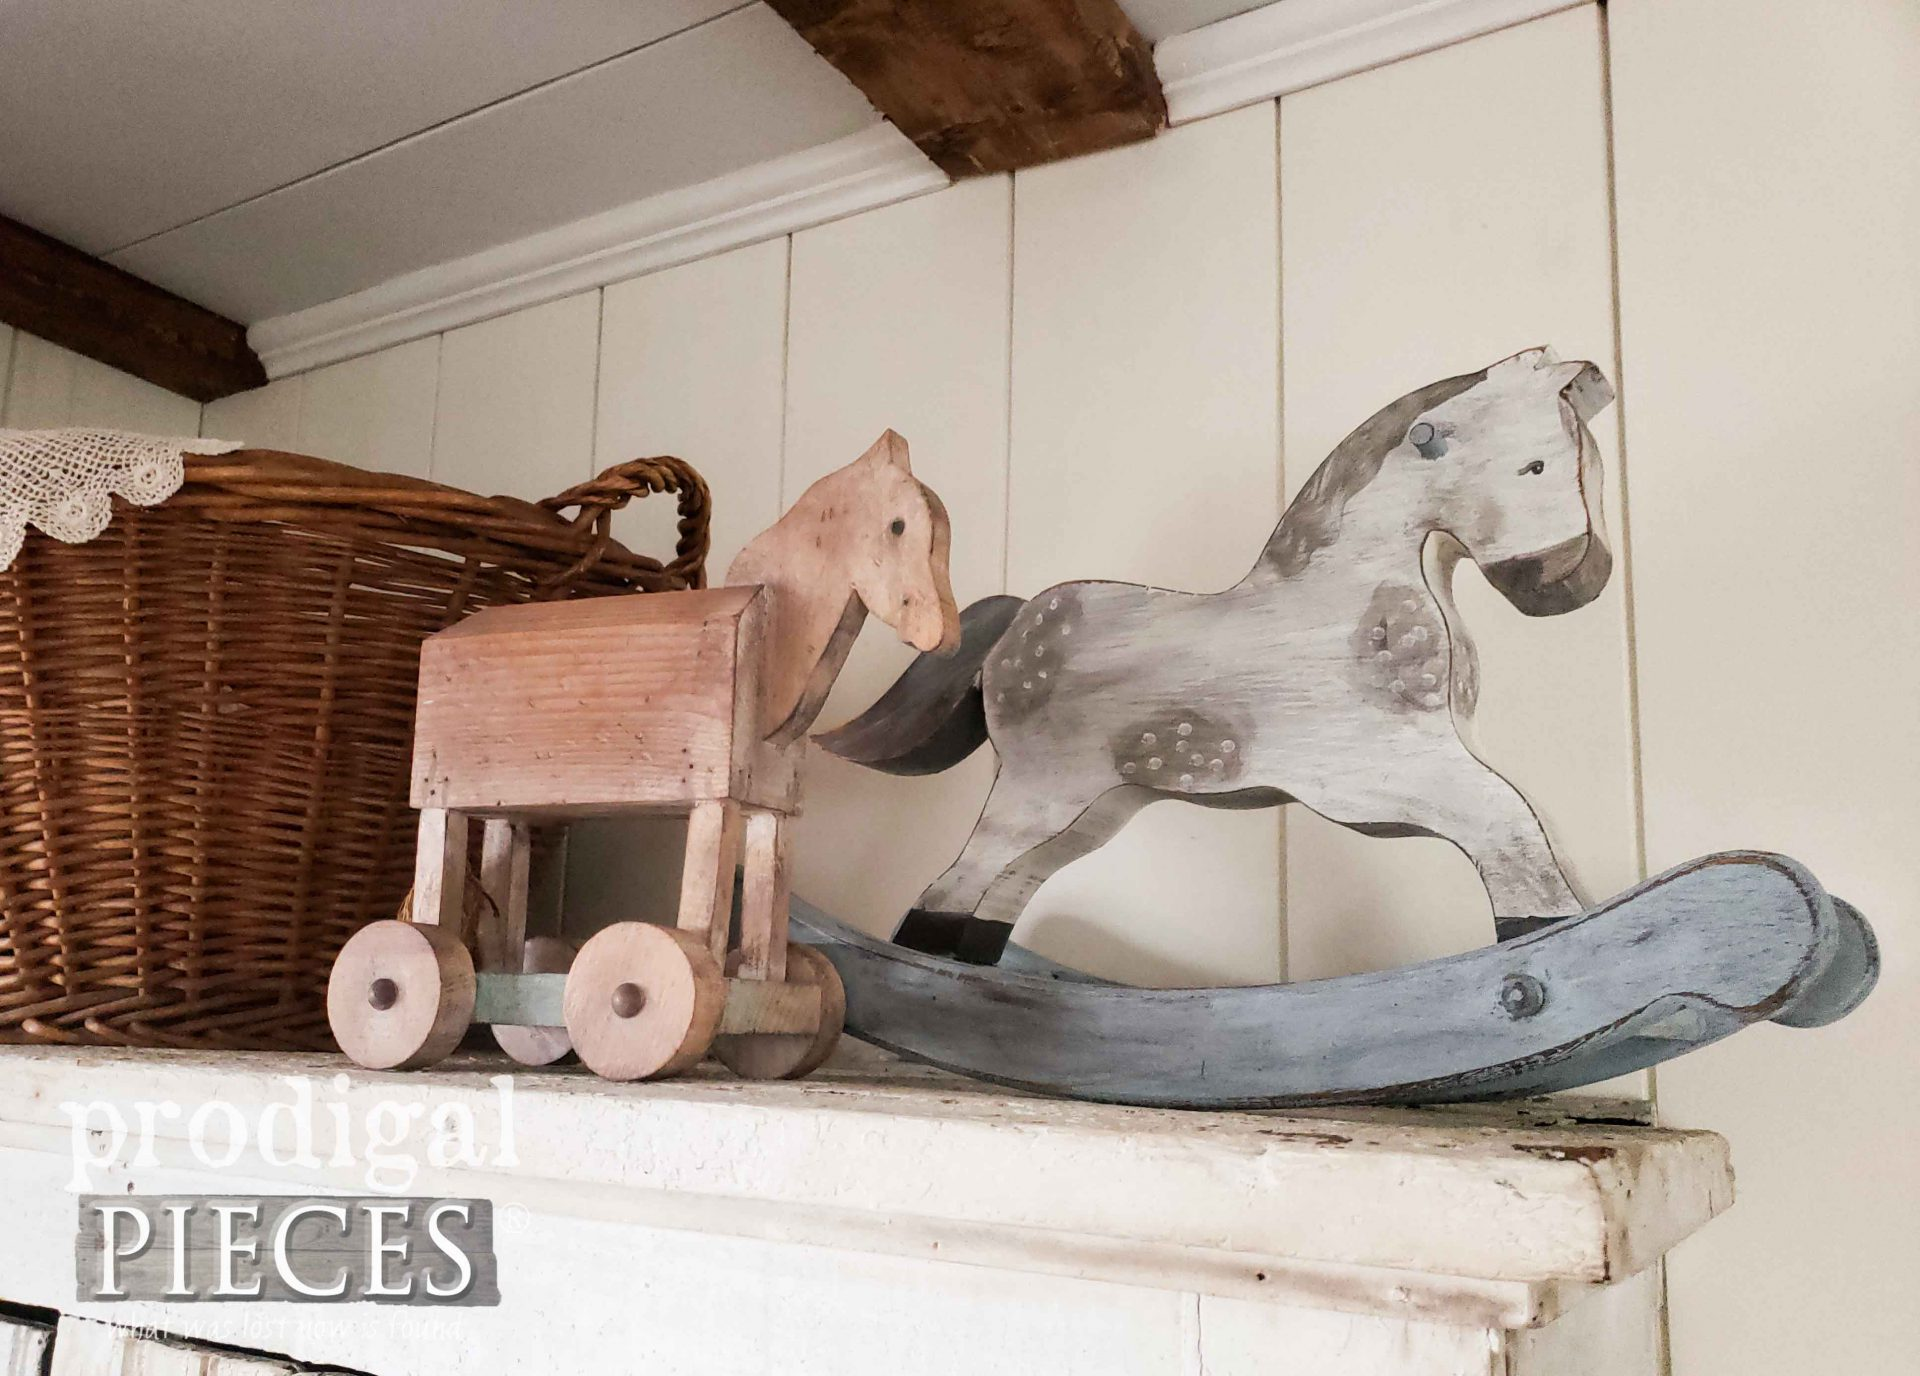 Handmade Miniature Rocking Horses for Farmhouse Decor by Larissa of Prodigal Pieces | prodigalpieces.com #prodigalpieces #farmhouse #home #handmade #homedecor